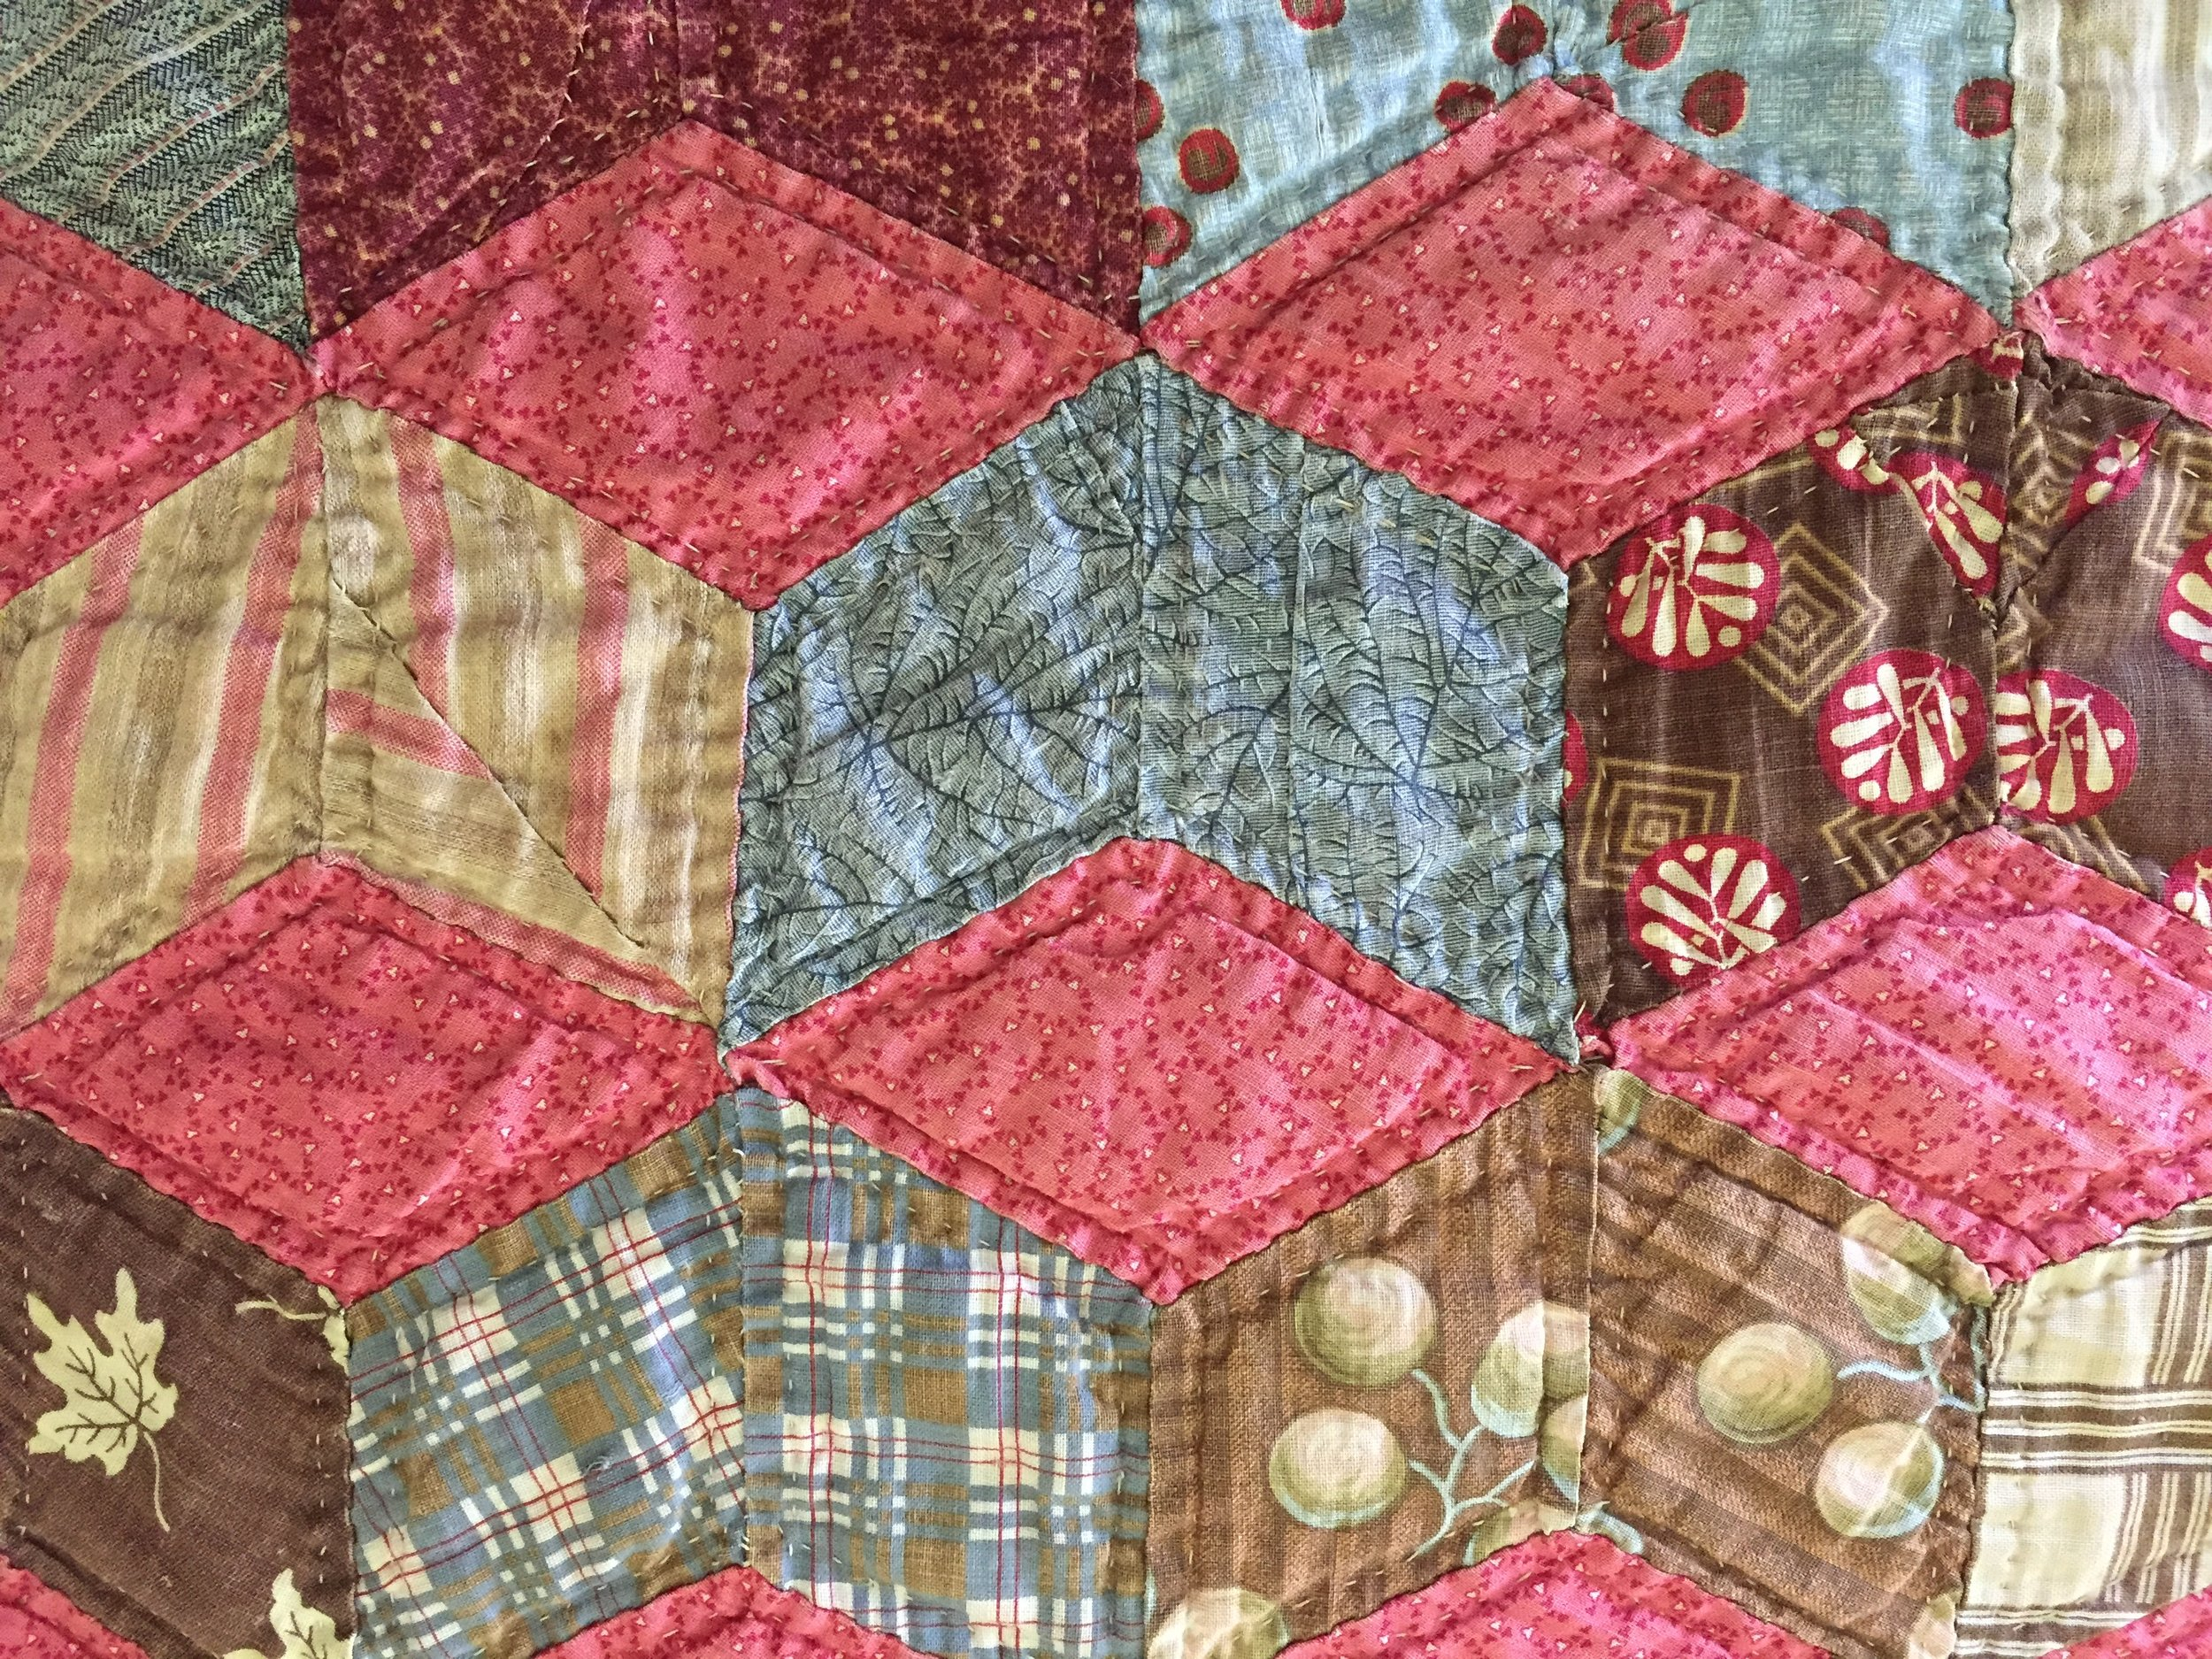 """I purchased this quilt 25 yrs ago from a woman who lived near Paducah Kentucky, named Alma Perish. It was hand quilted in the 1920's. Alma had the largest collection of vintage quilts I have ever seen. She knew the history of each quilt and sold them out of a tin roof cabin in the woods down a dirt road. We followed a hand written sign on a piece of scrap wood that said """"quilts"""" and an arrow pointing down the road. I was quite young at the time and didn't have a lot of money. I had picked out 3 quilts that I loved but knew I could only afford one of them. As I was trying to choose, Alma said to me """"Honey, you take all three. Pay me what you can now and send me the rest when you have it."""" She insisted that I take all three home with me that day! I sent her as much money as I could over the next year until I had paid them off. I'll never forget Alma. What a beautiful soul she was."""